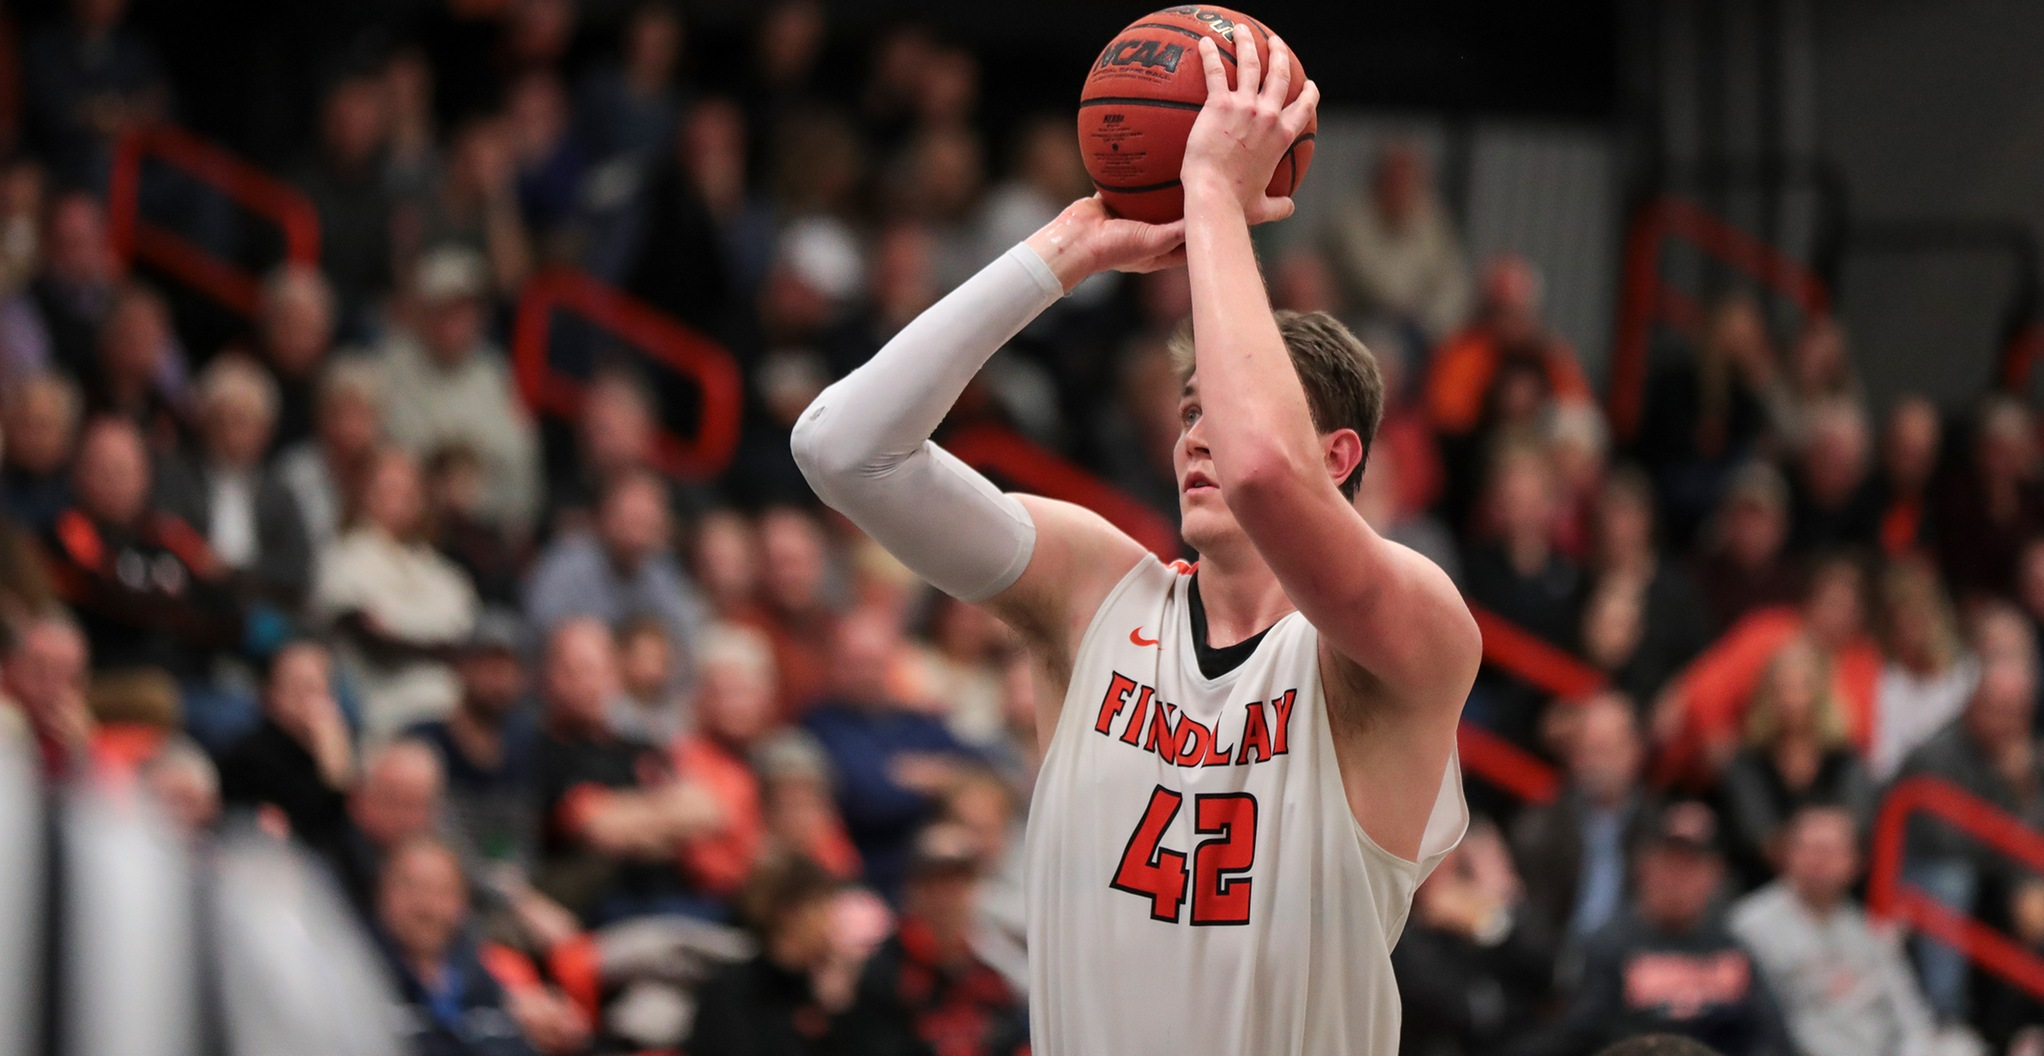 White Leads #23 Oilers to 92-75 Win Over Battlers